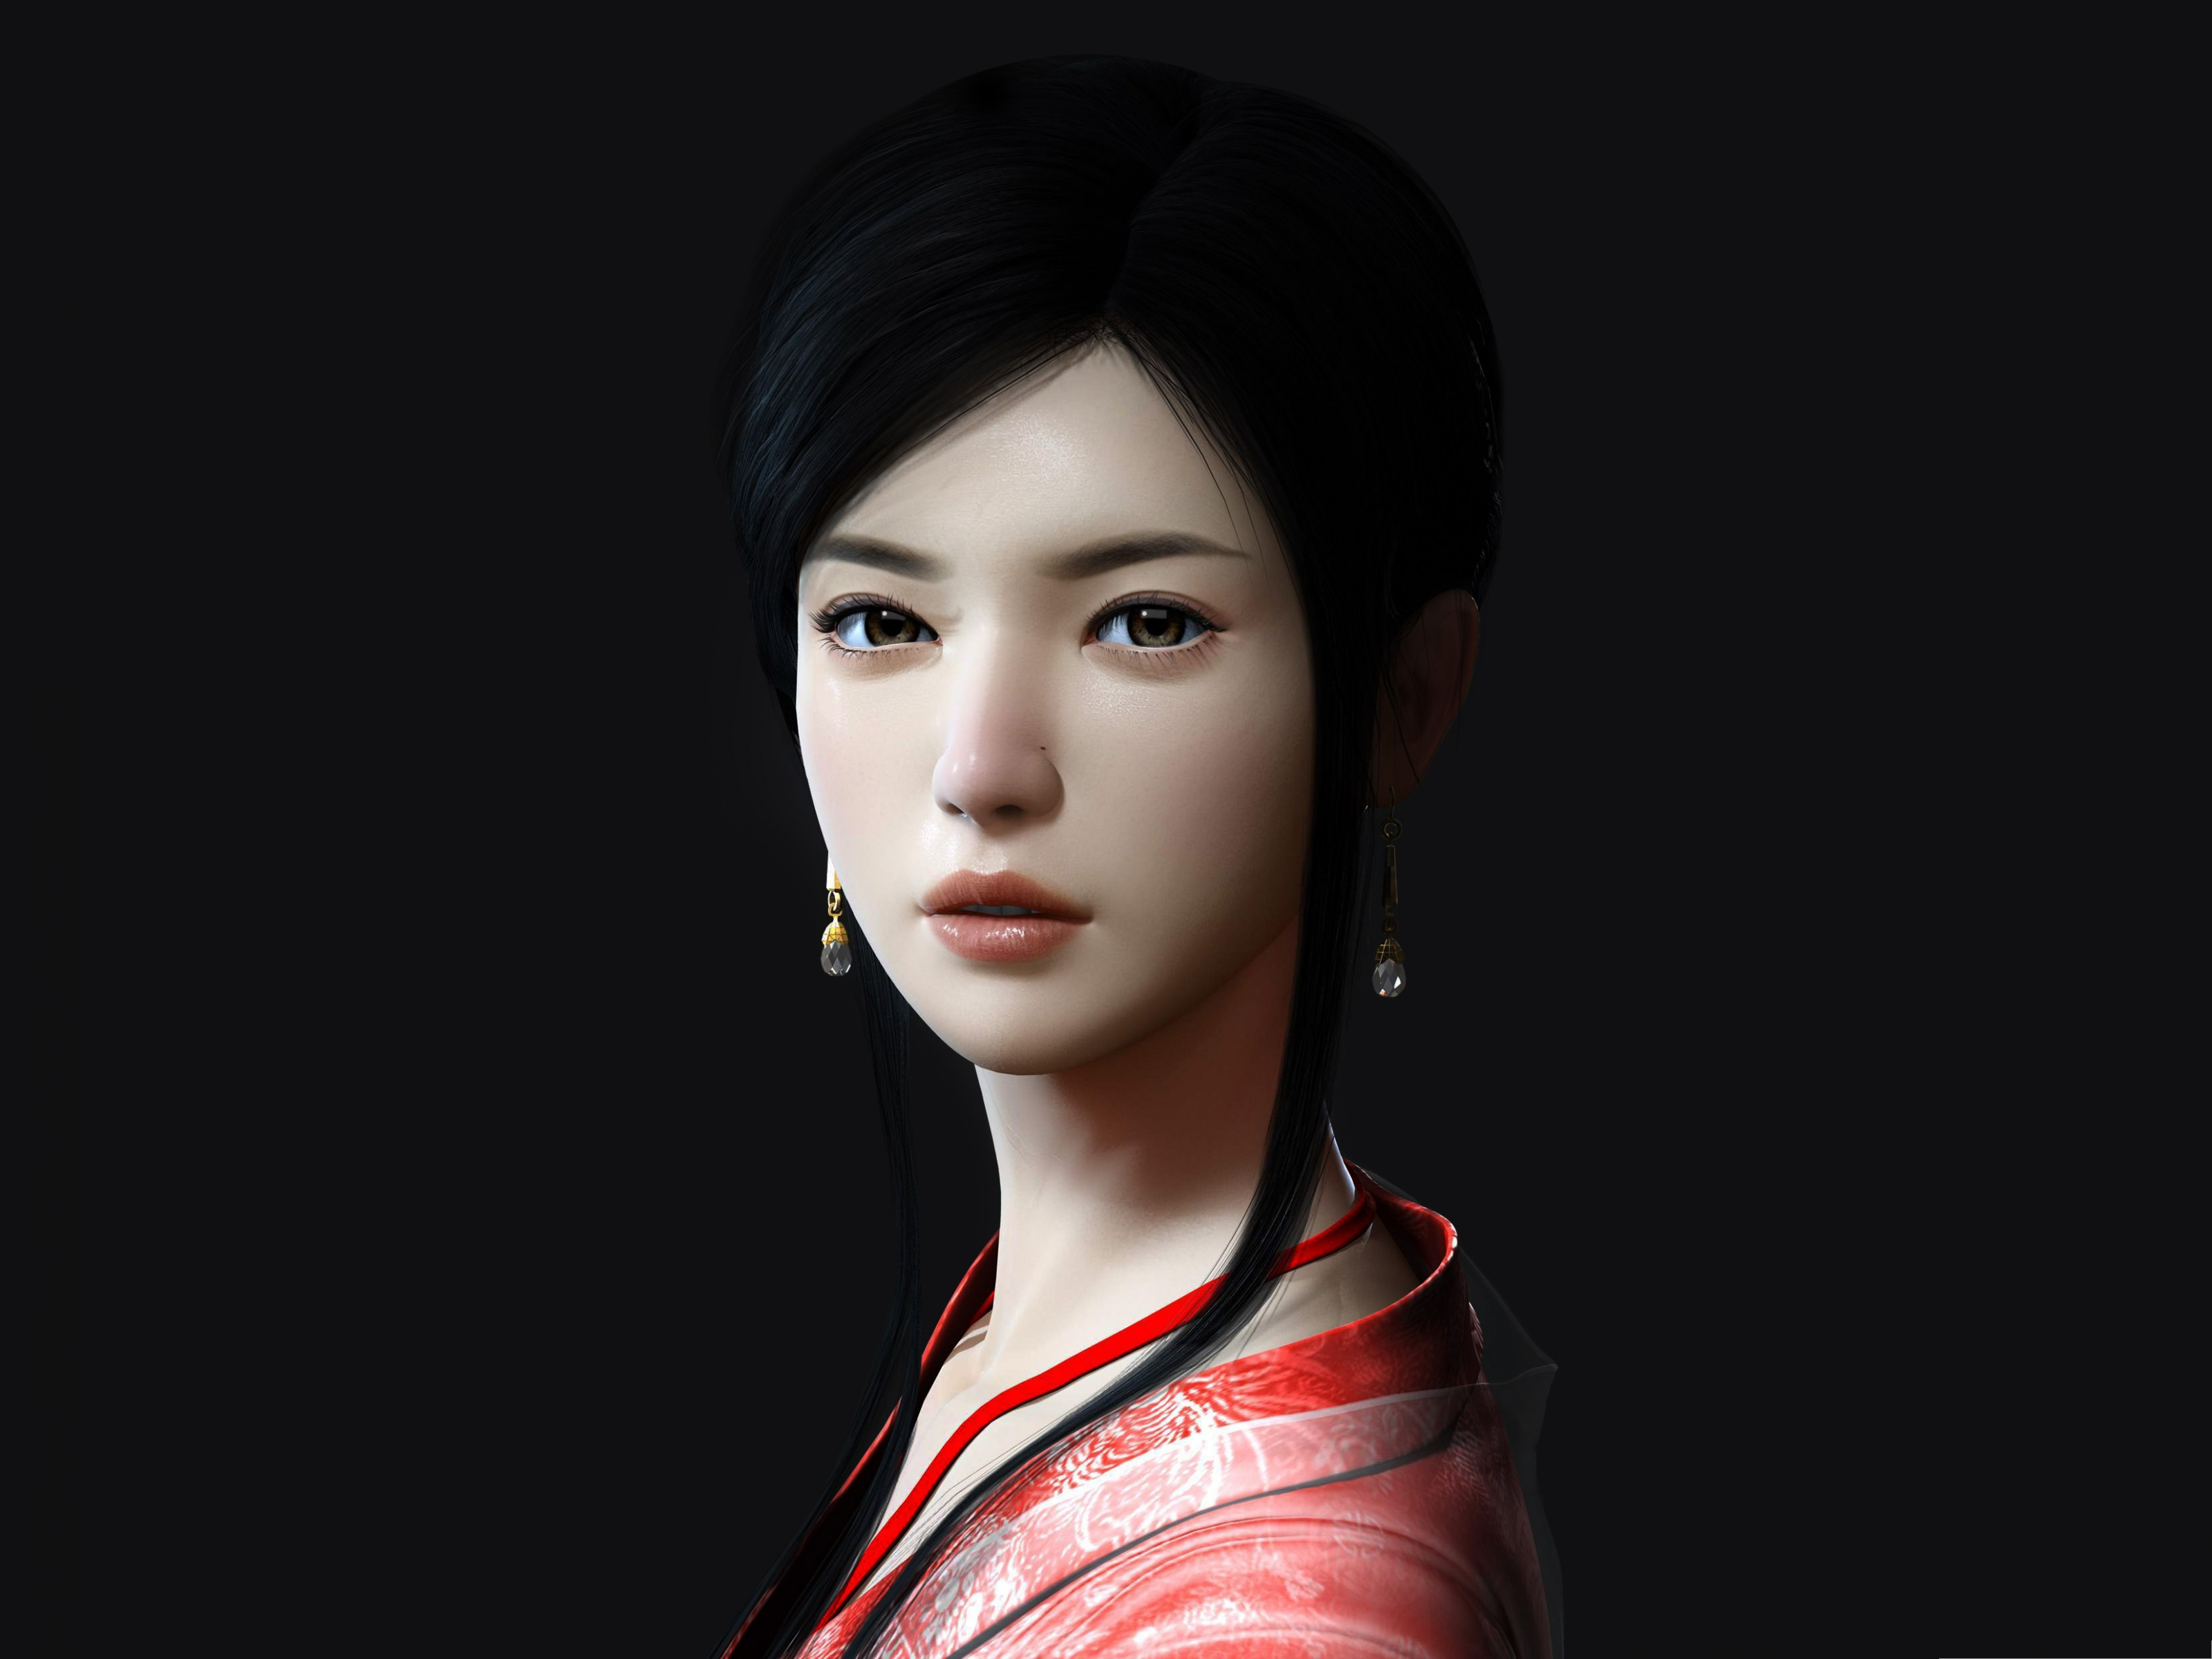 click to free download the wallpaper--Ancient Asian Girl, Black Straight Hair and Snowy White Skin, What a Beauty! 3200X2400 free wallpaper download